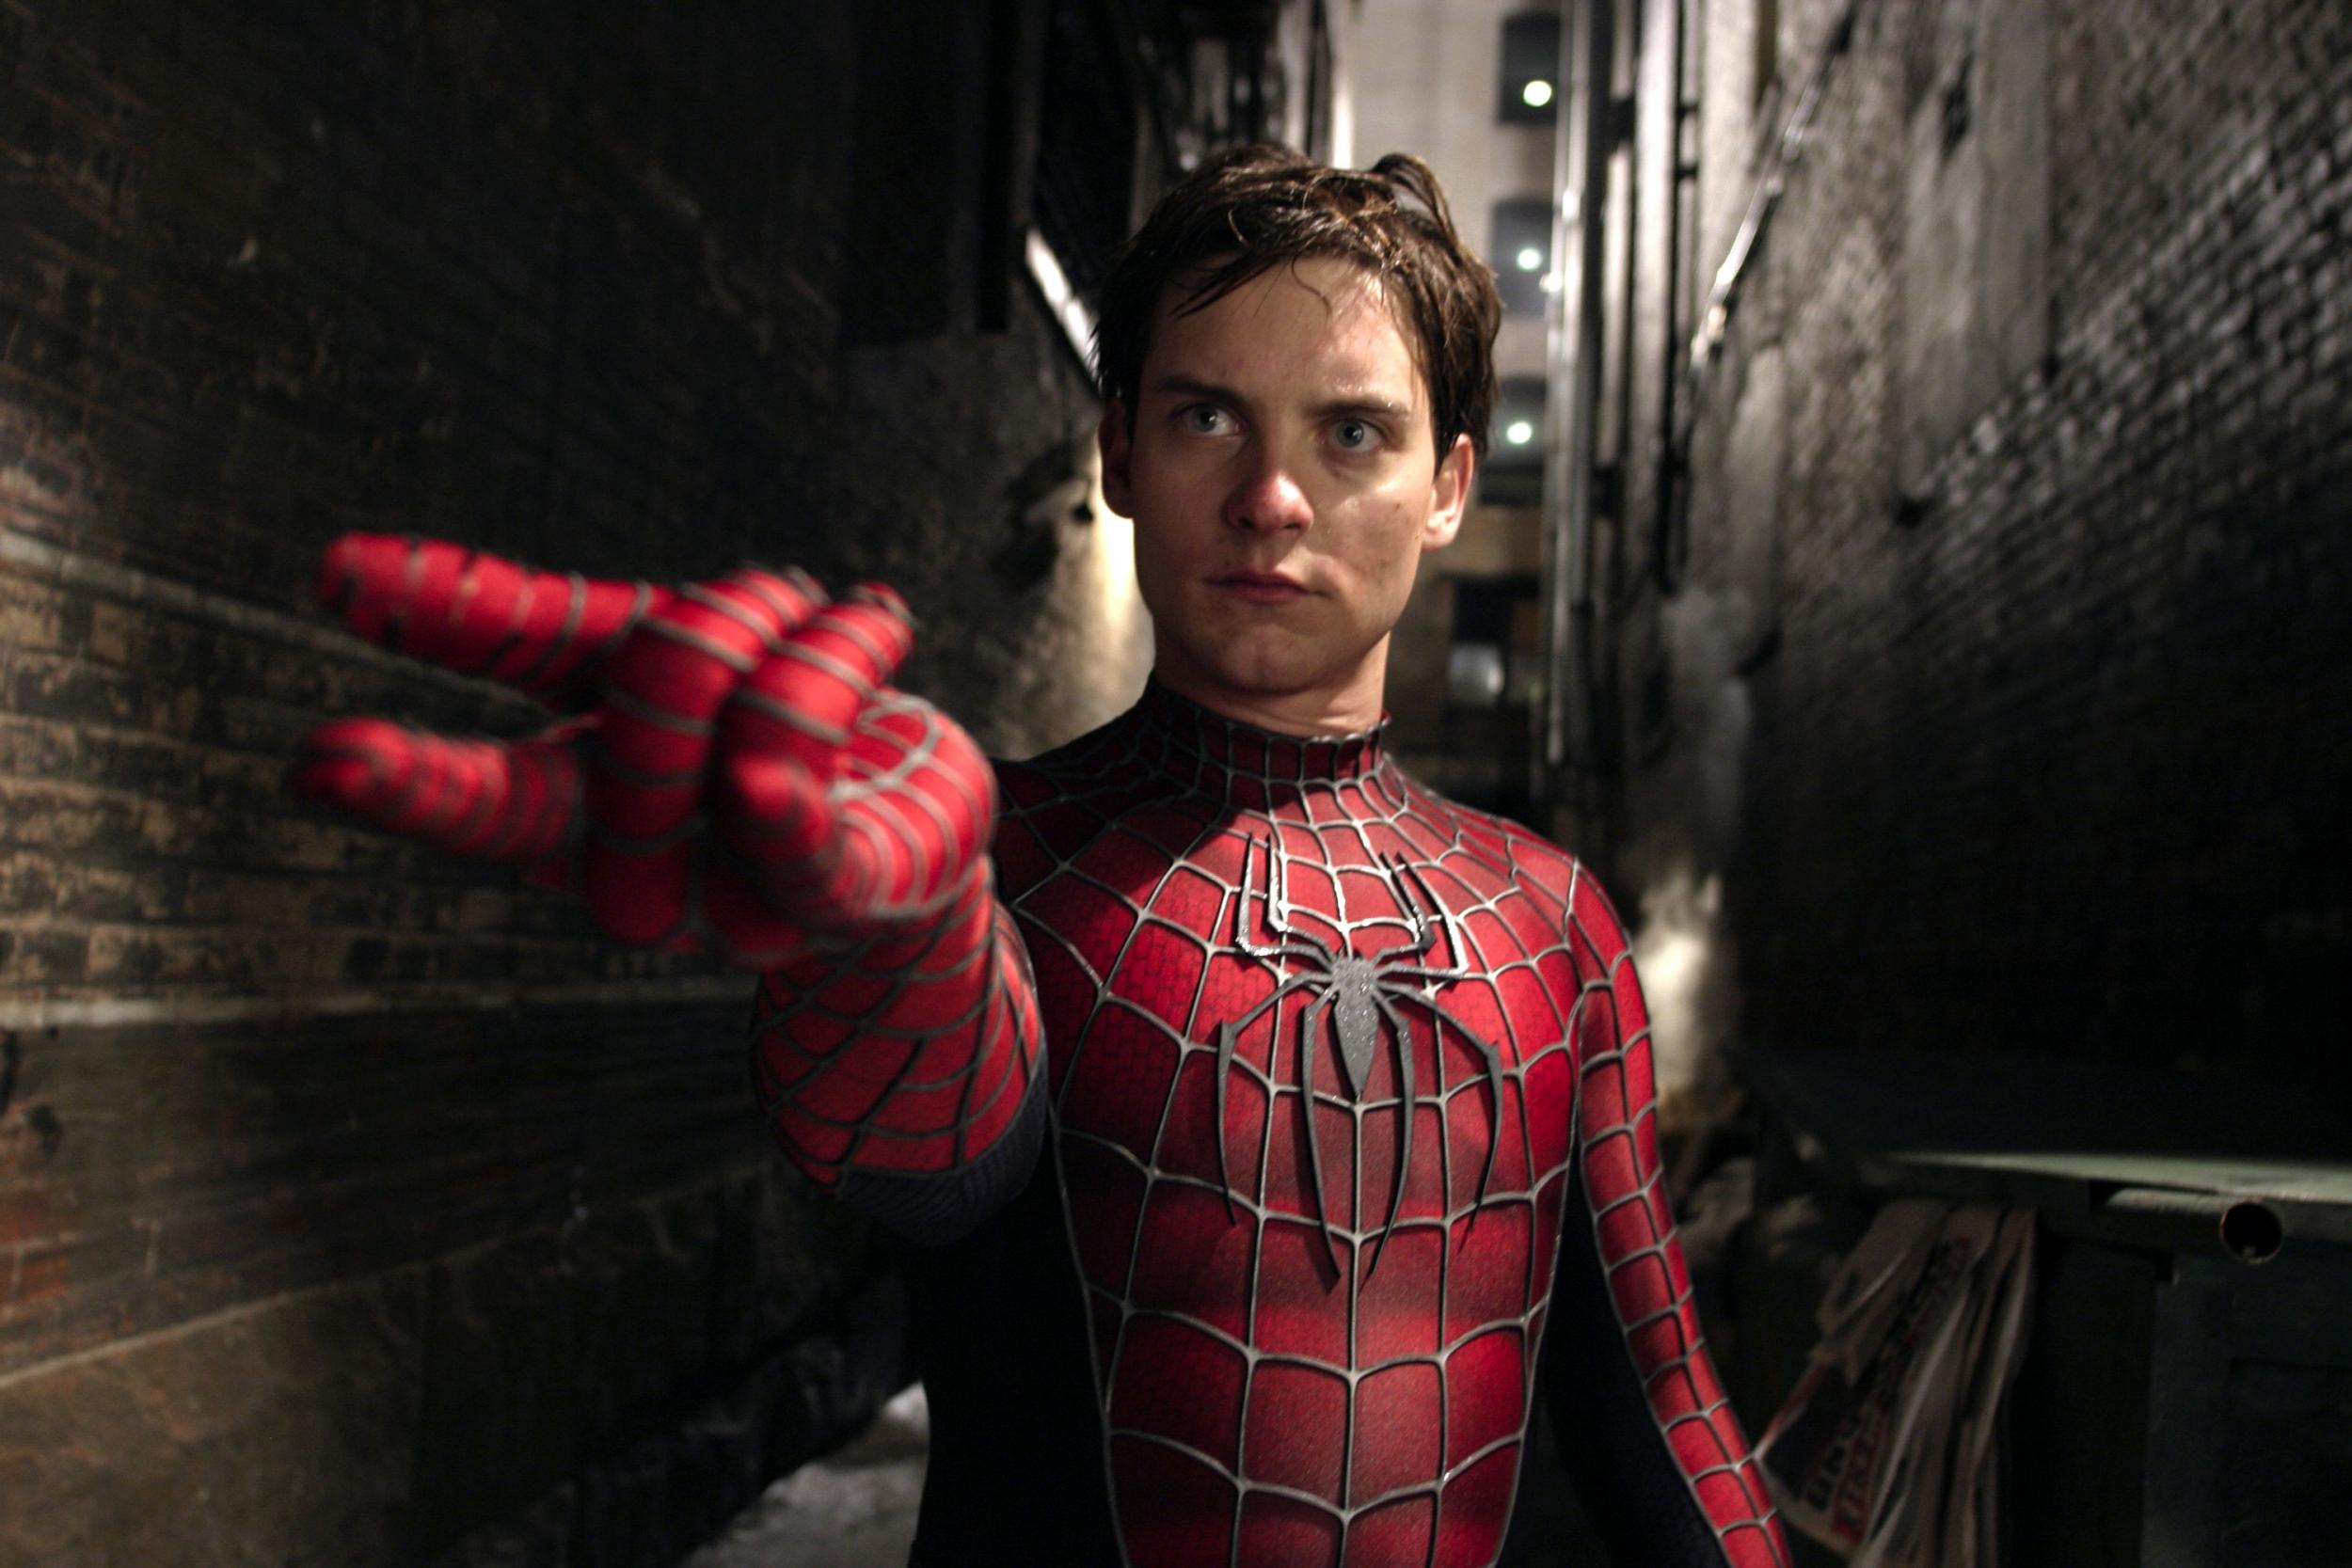 https://static.independent.co.uk/s3fs-public/thumbnails/image/2016/05/09/09/tobey-maguire-spiderman.jpg